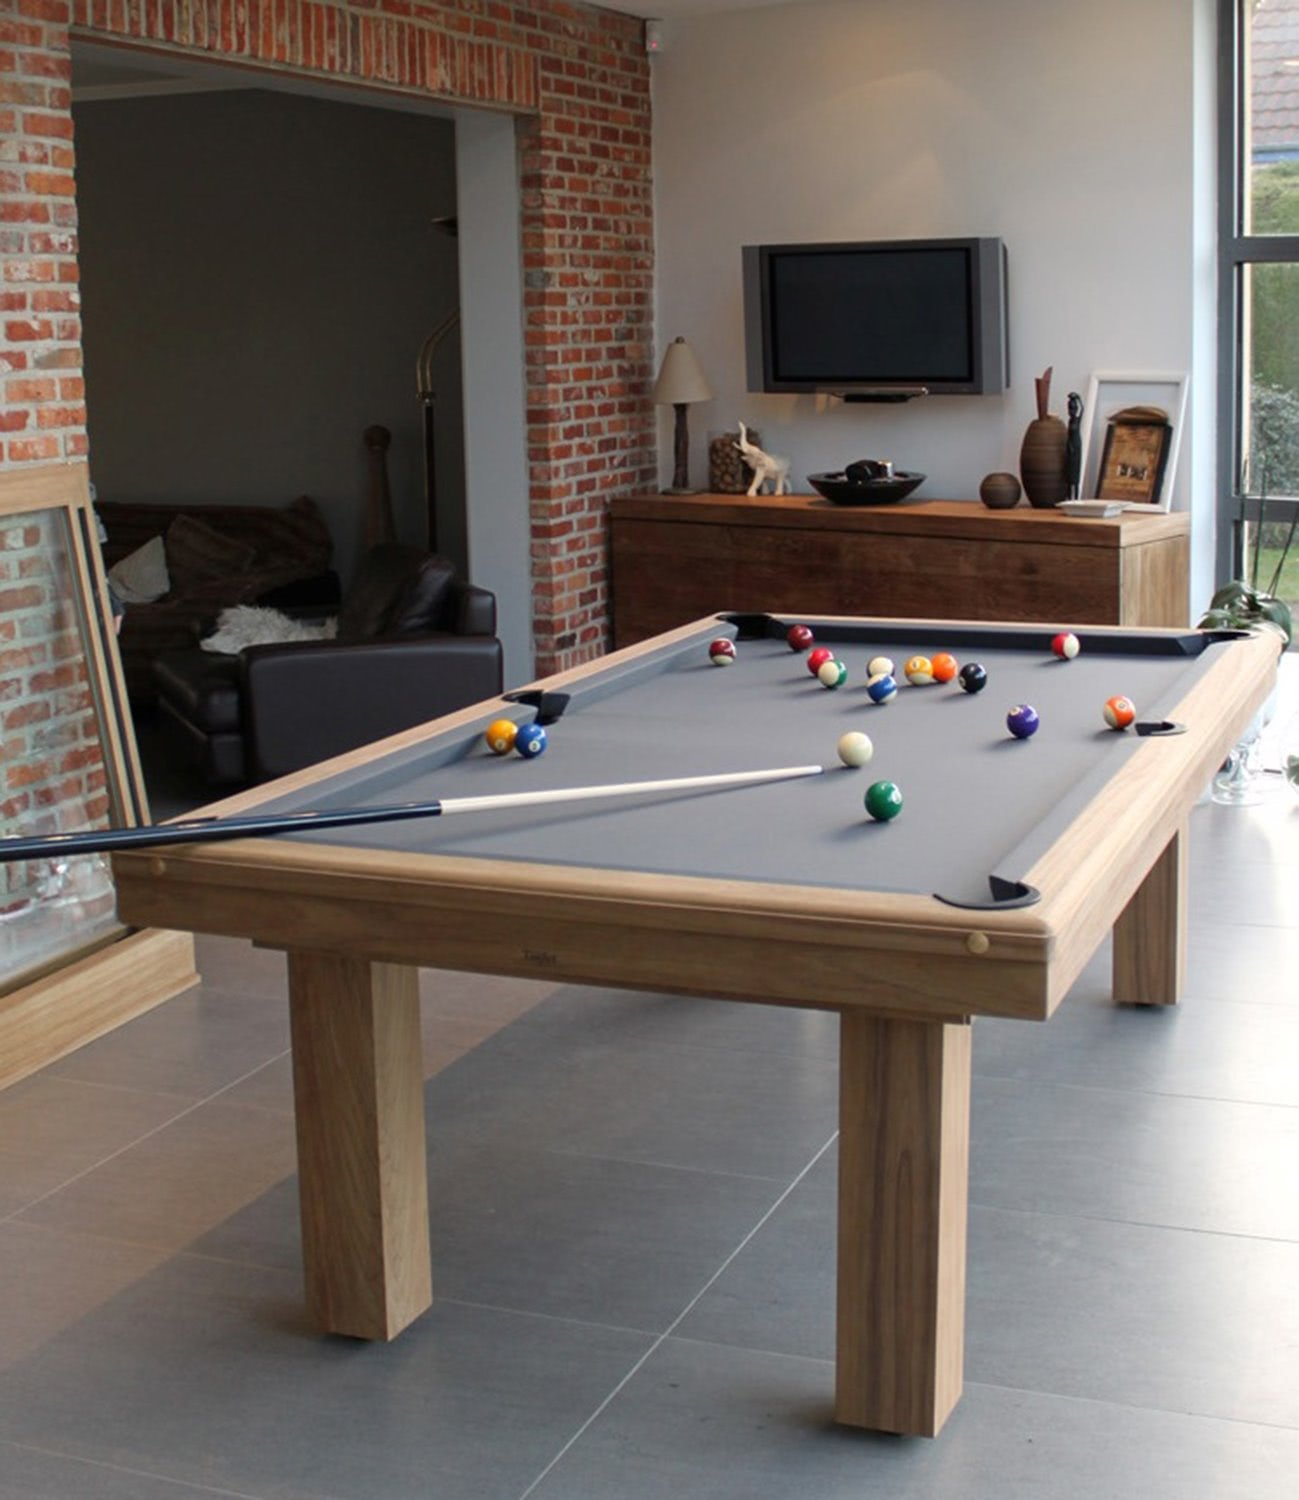 Billard Toulet Outdoor Teck Pool Table 6 Ft 7 Ft 8 Ft